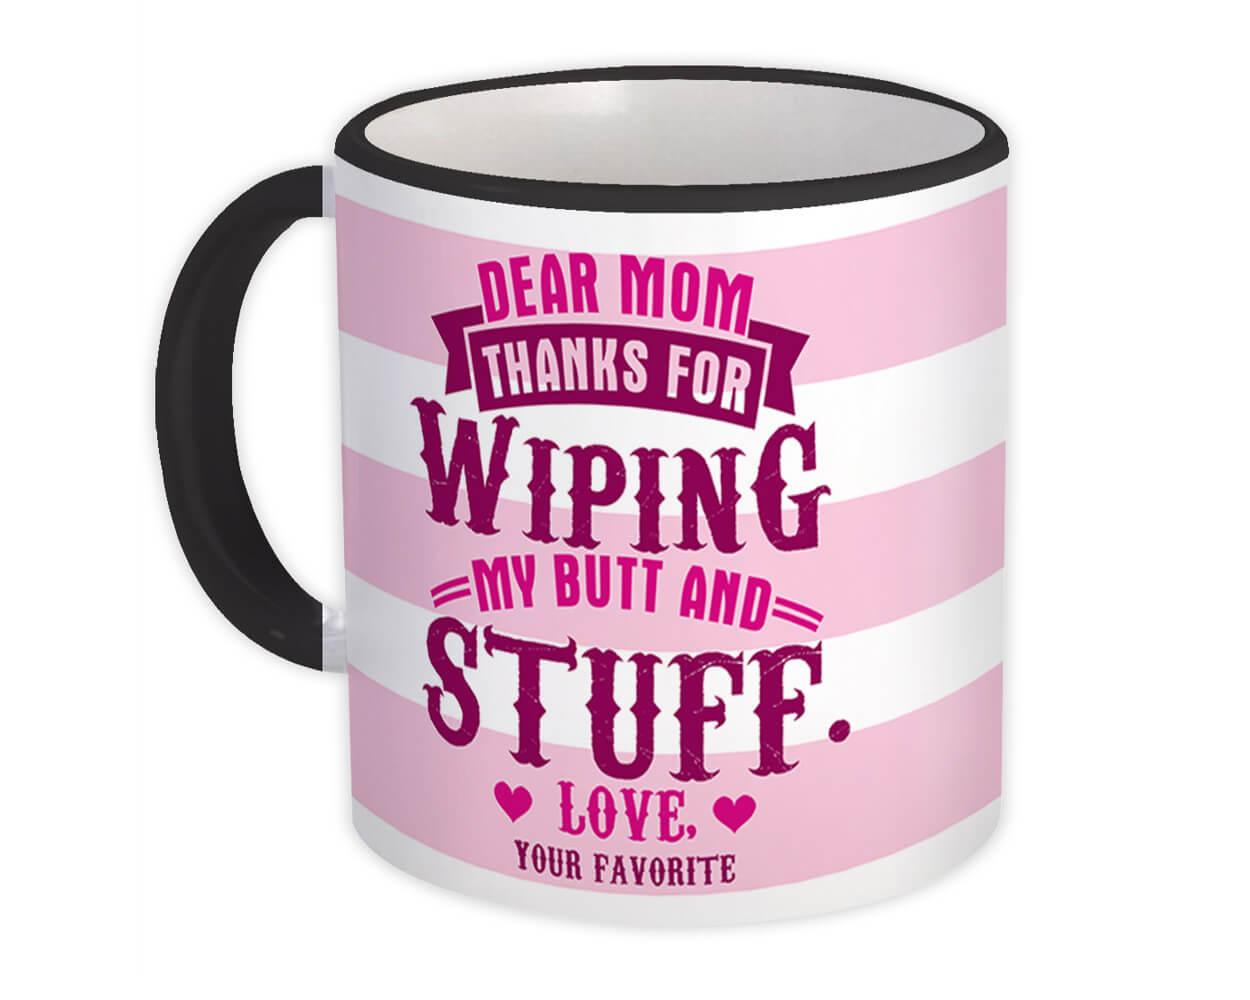 Dear Mom : Gift Mug Mothers Day Favorite Child Wiping Stuff Family